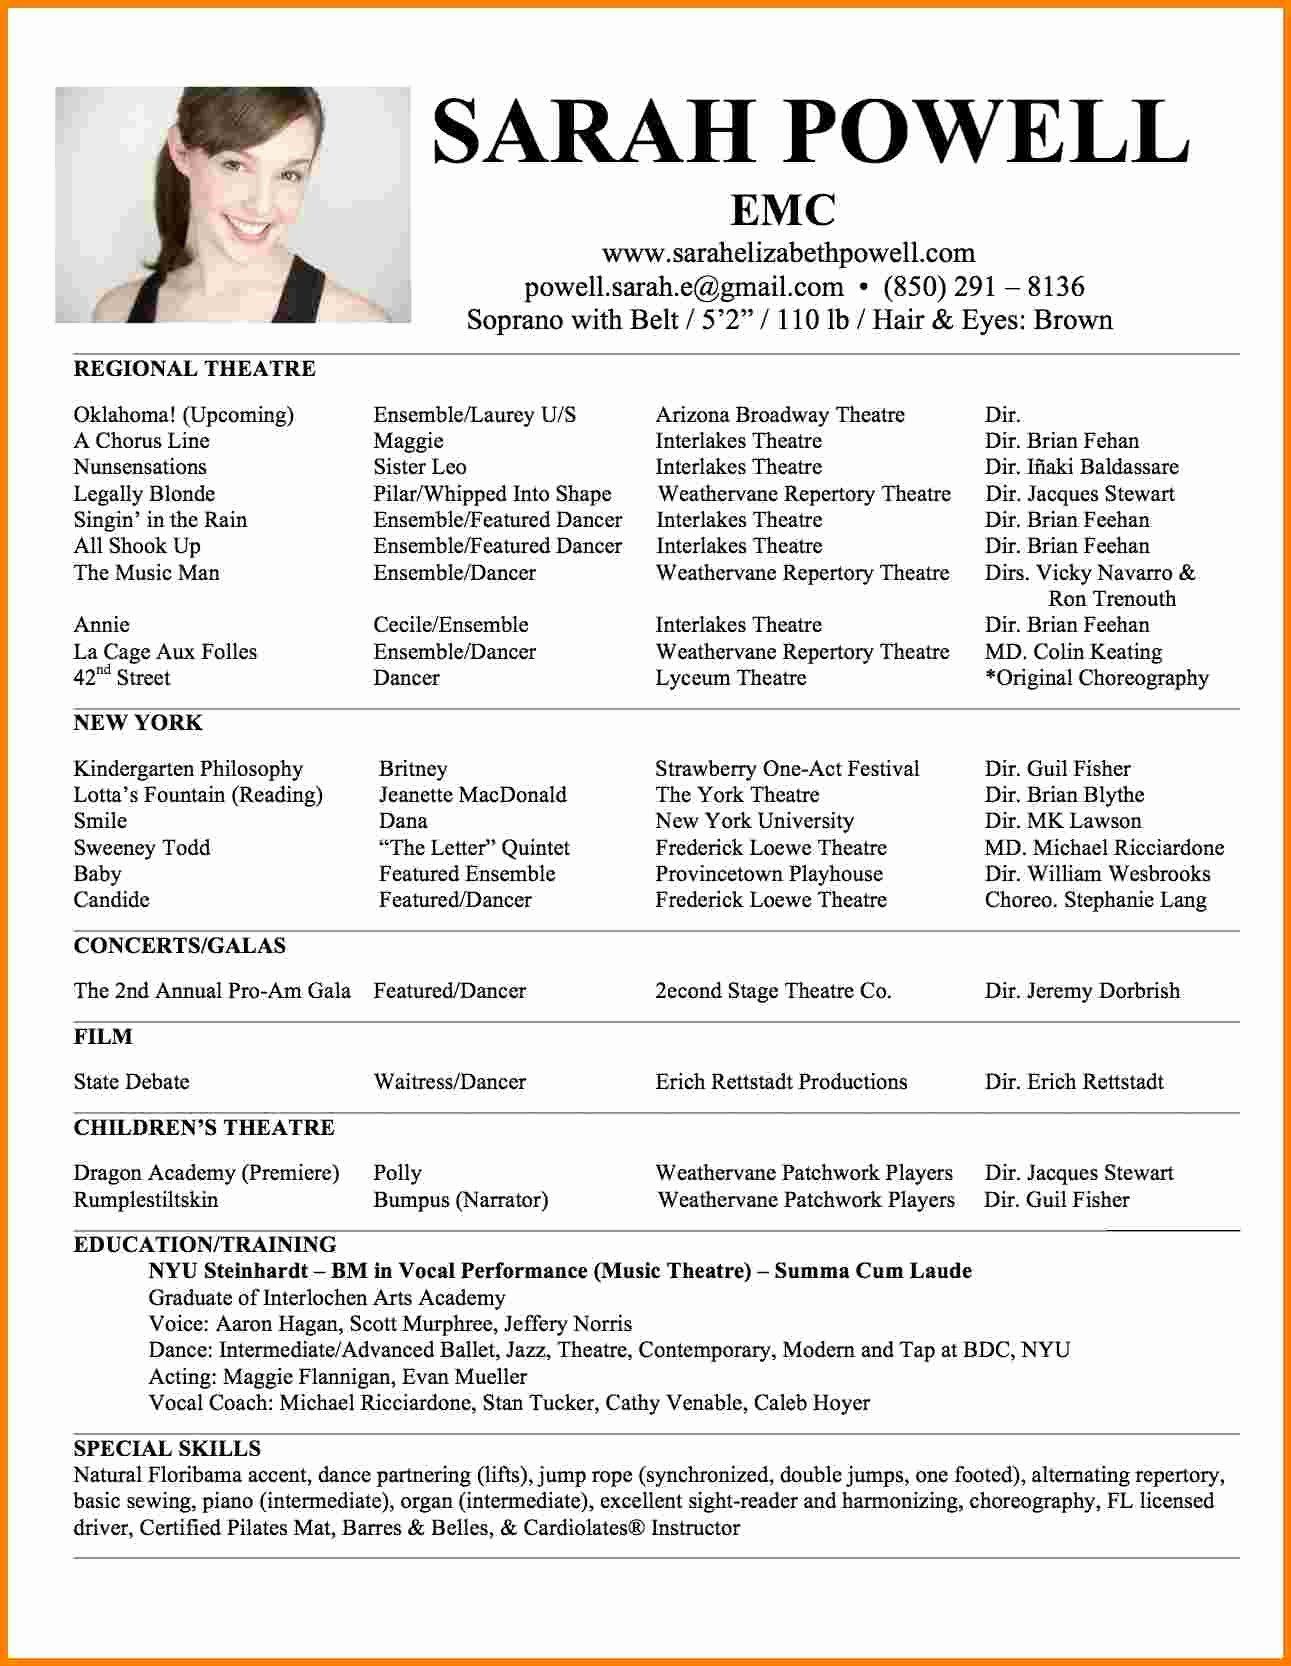 One Page Resume Examples New 5 Best One Page Resume Templates